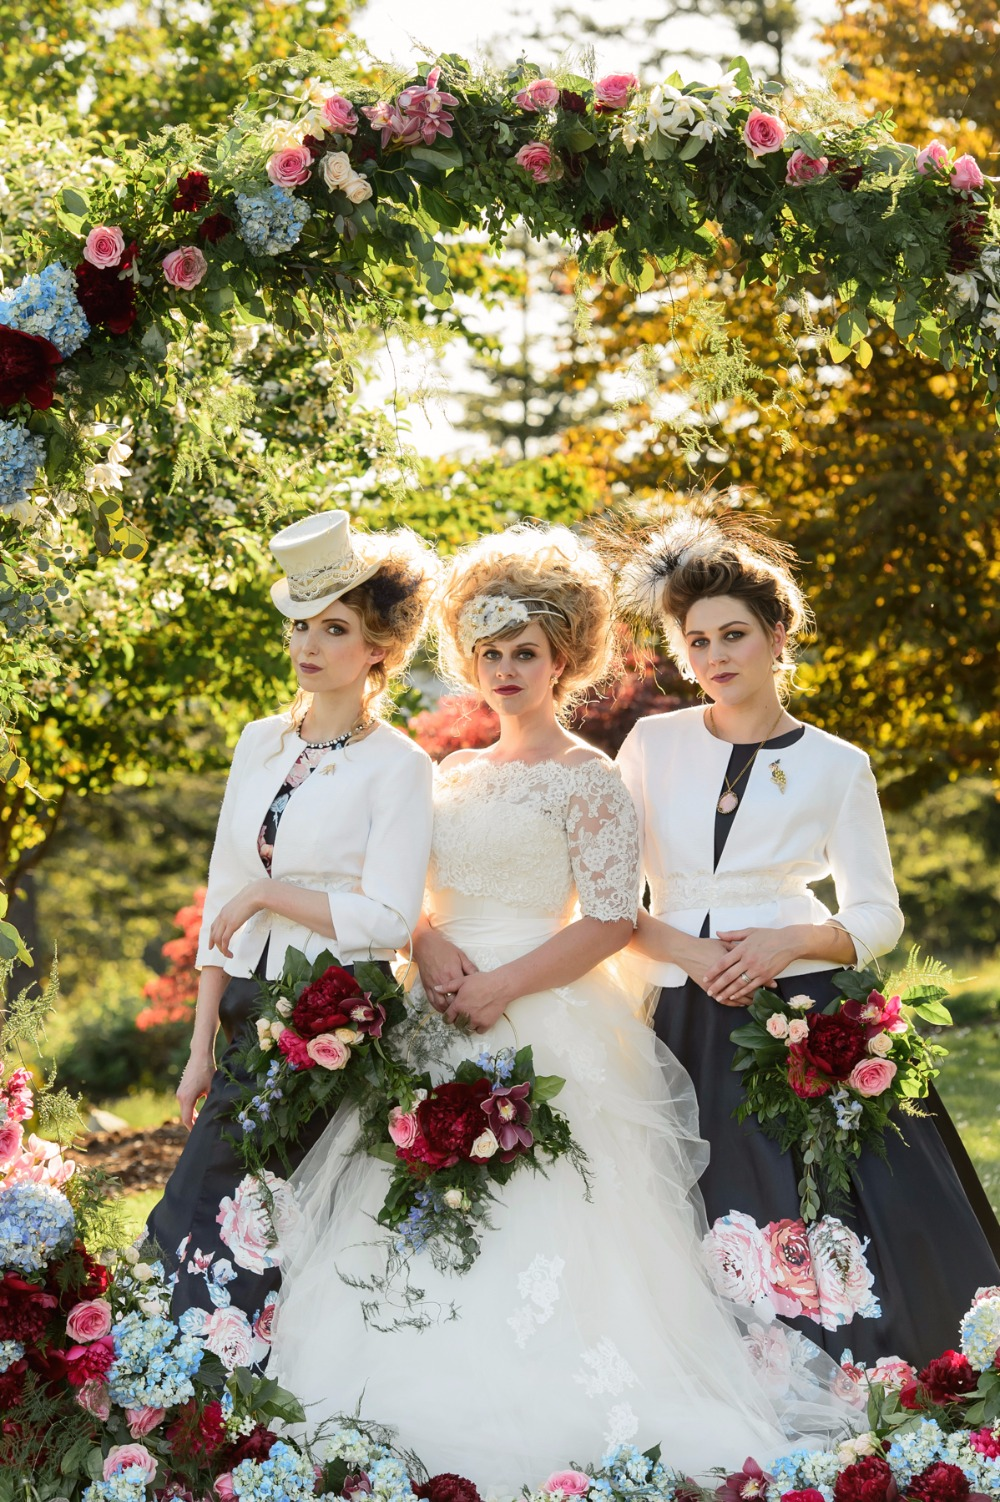 A Colorful Over-the-Top Wedding Inspired by Marie Antoinette